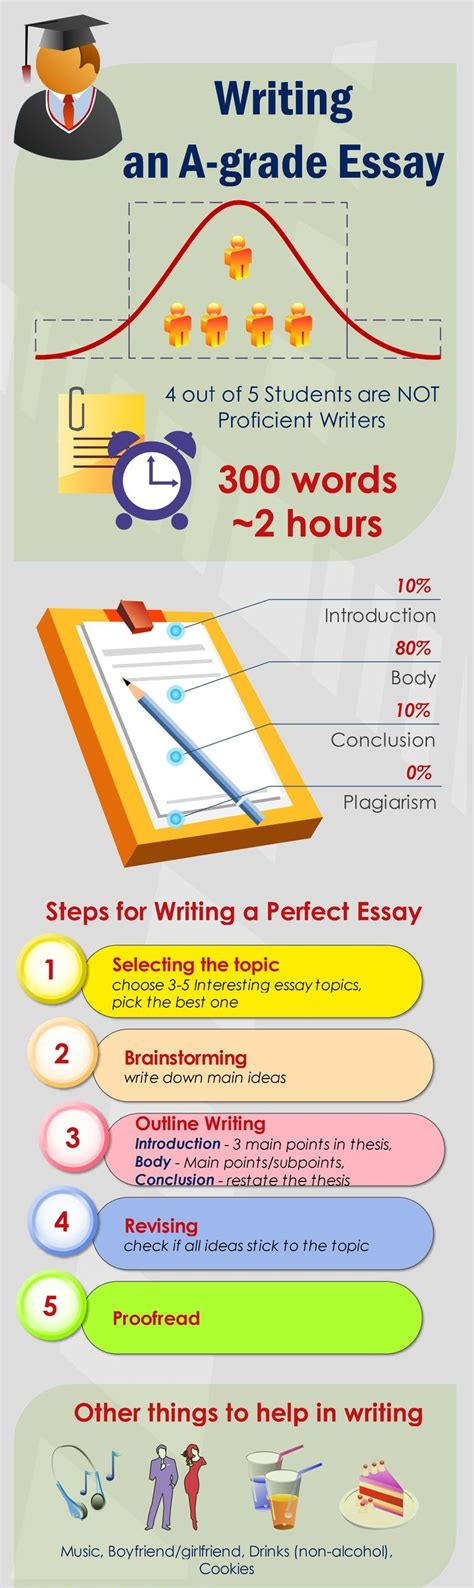 paper writing tips academic help page 2 intel writers